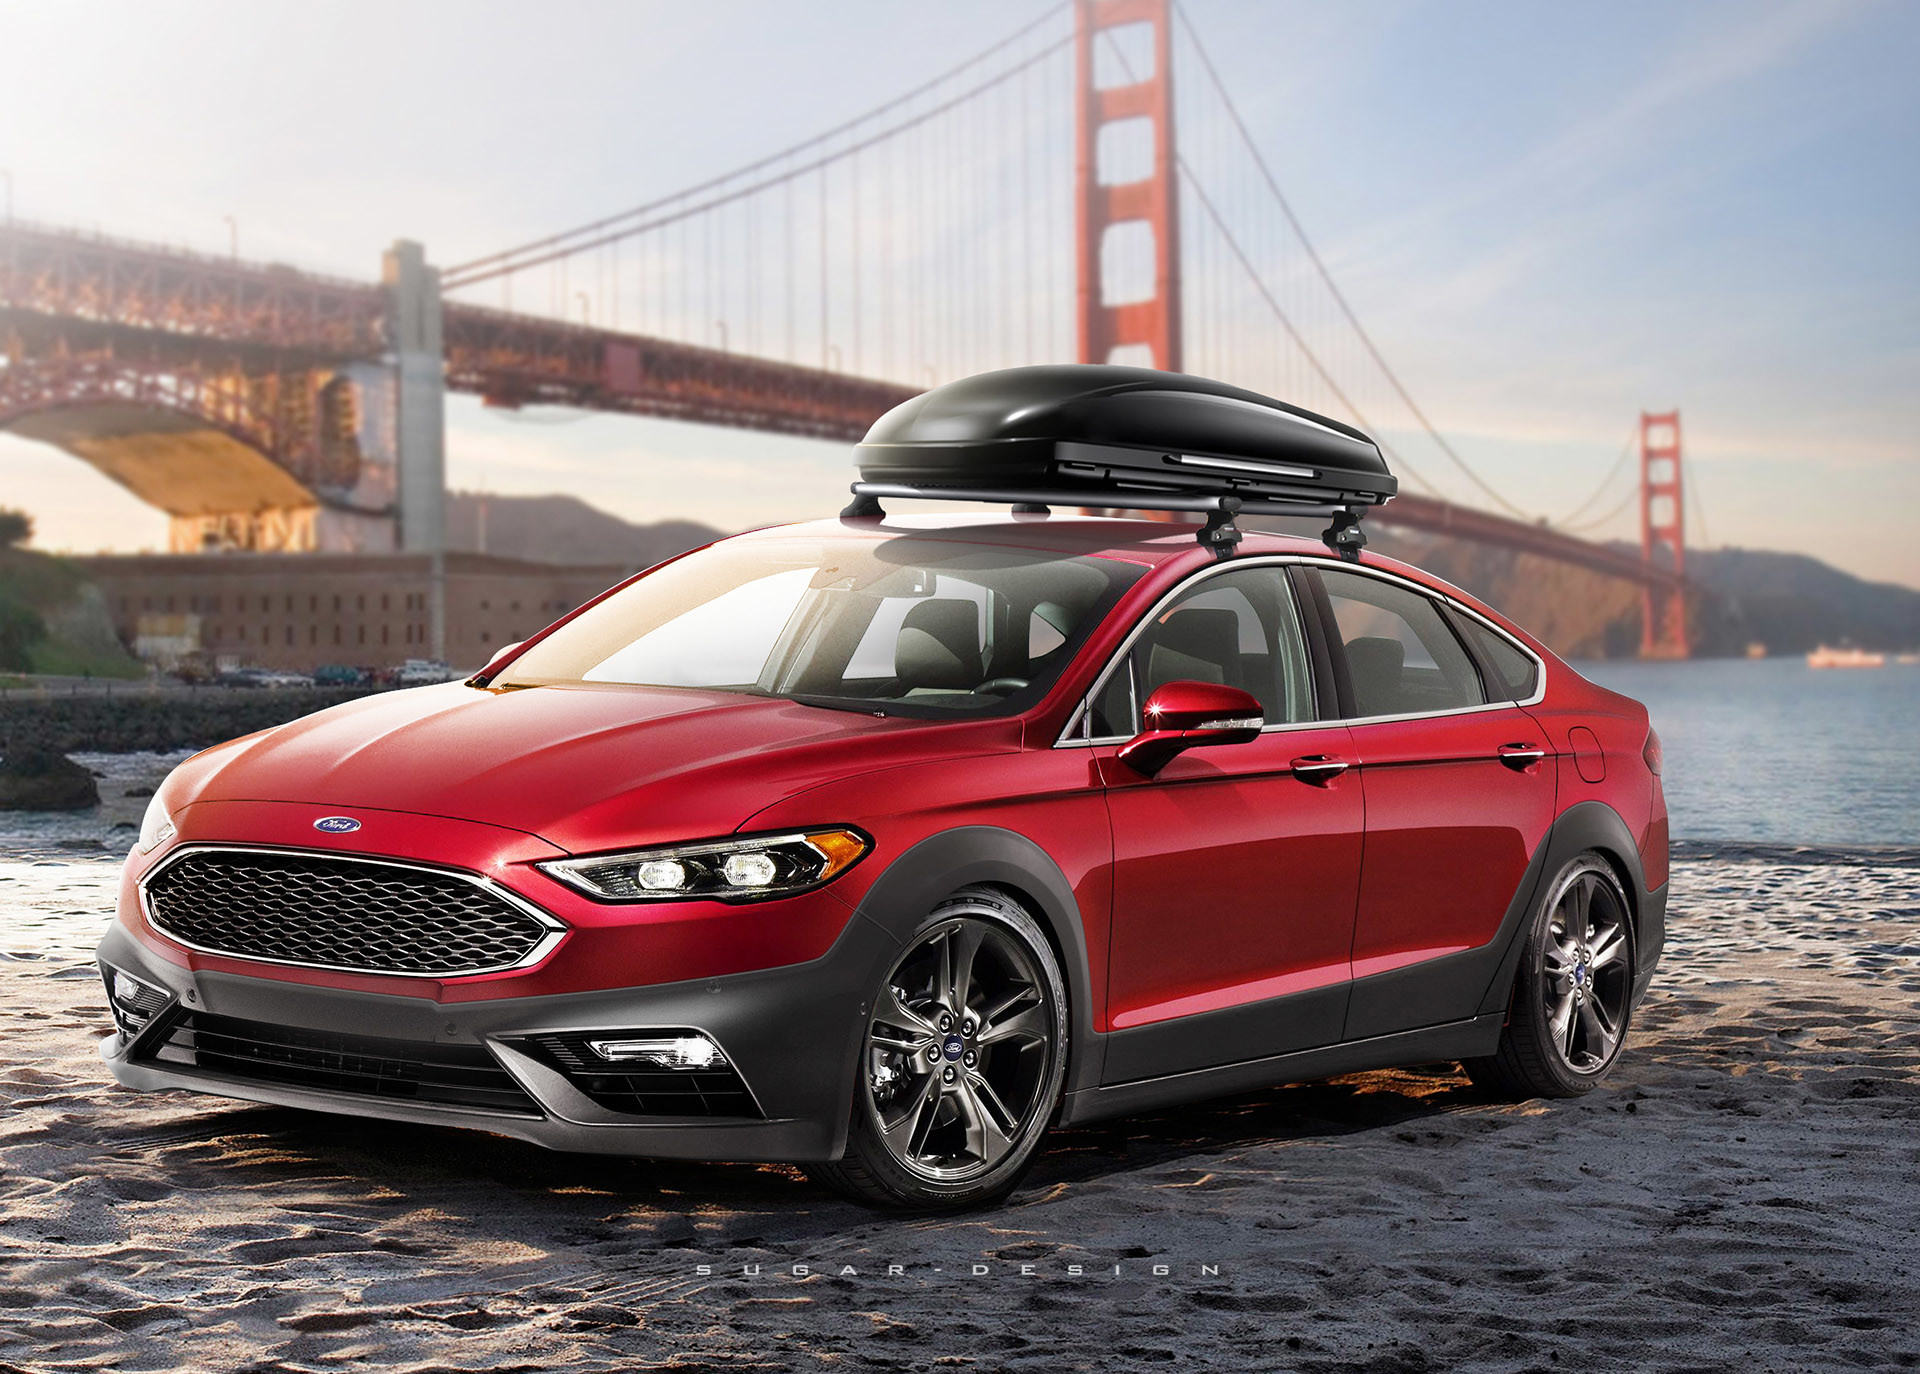 Images Of Ford Fusion Car